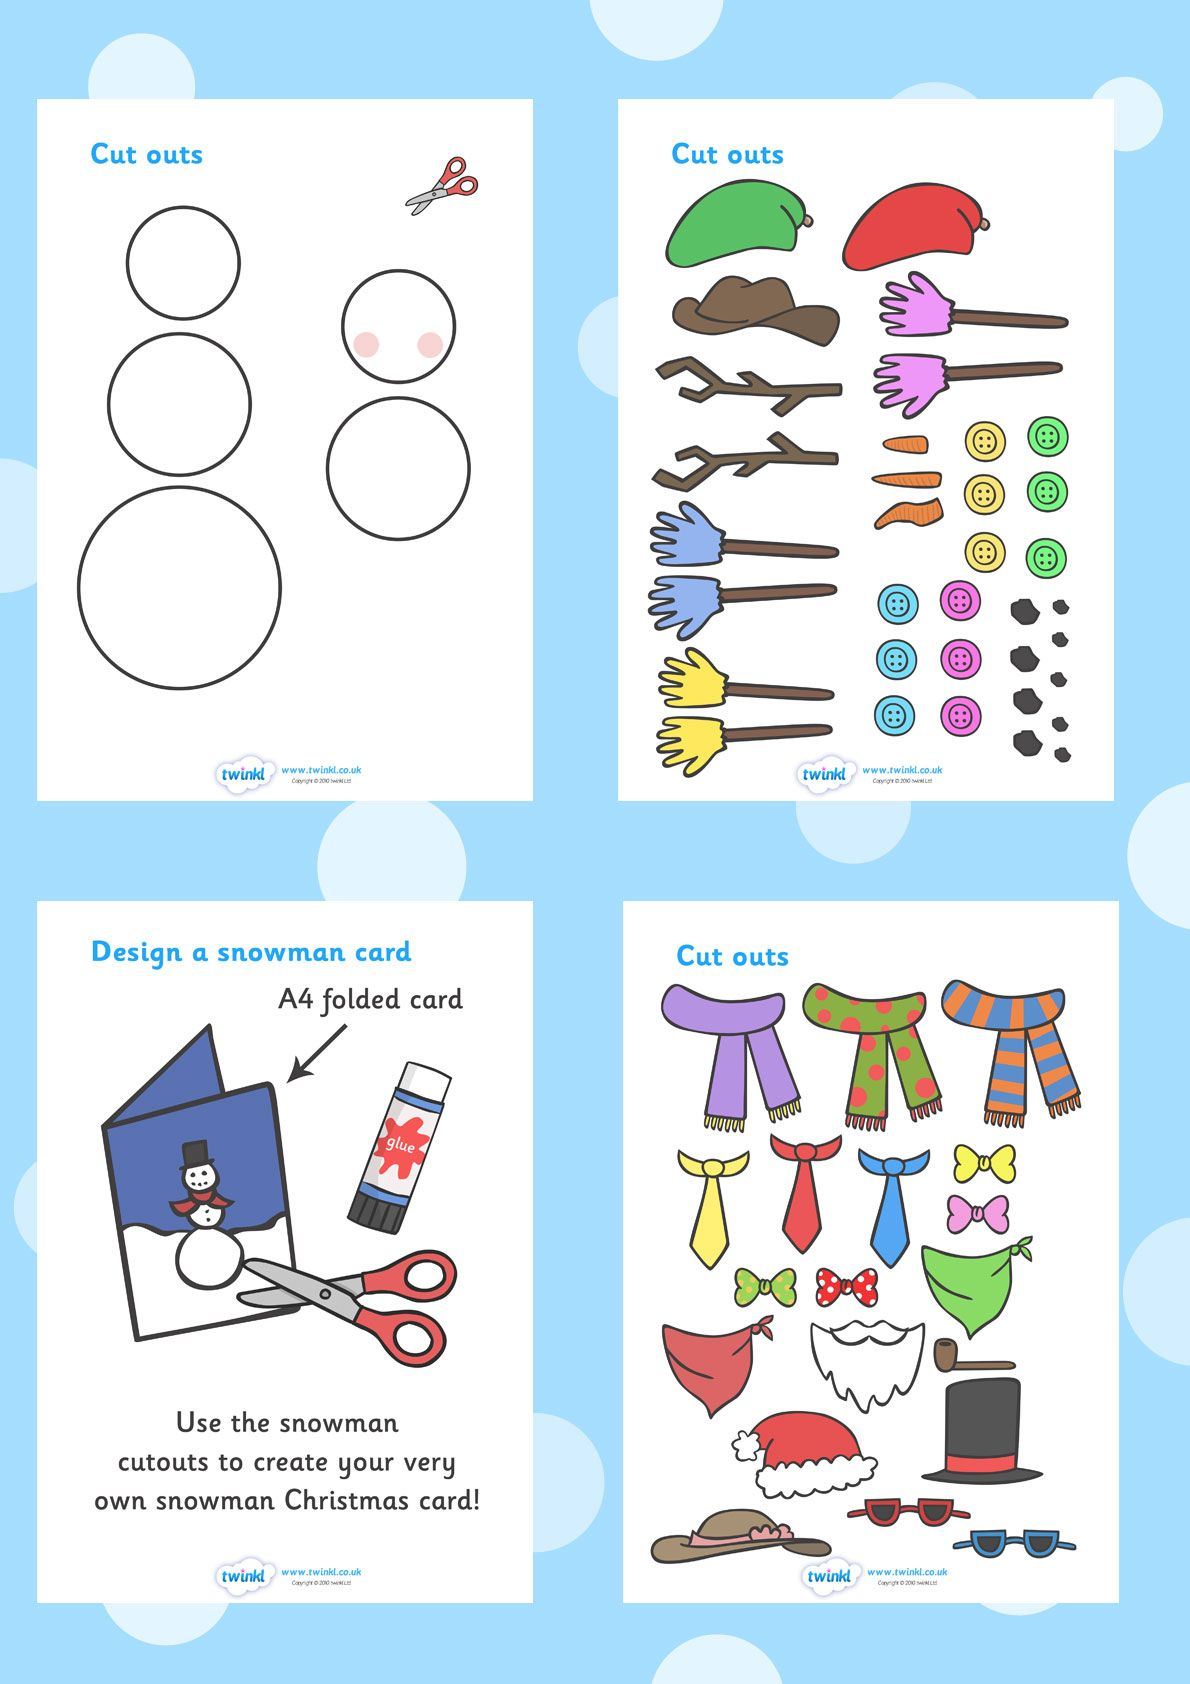 Twinkl Resources Gt Gt Snowman Christmas Card Designing Worksheets Gt Gt Printable Resources For